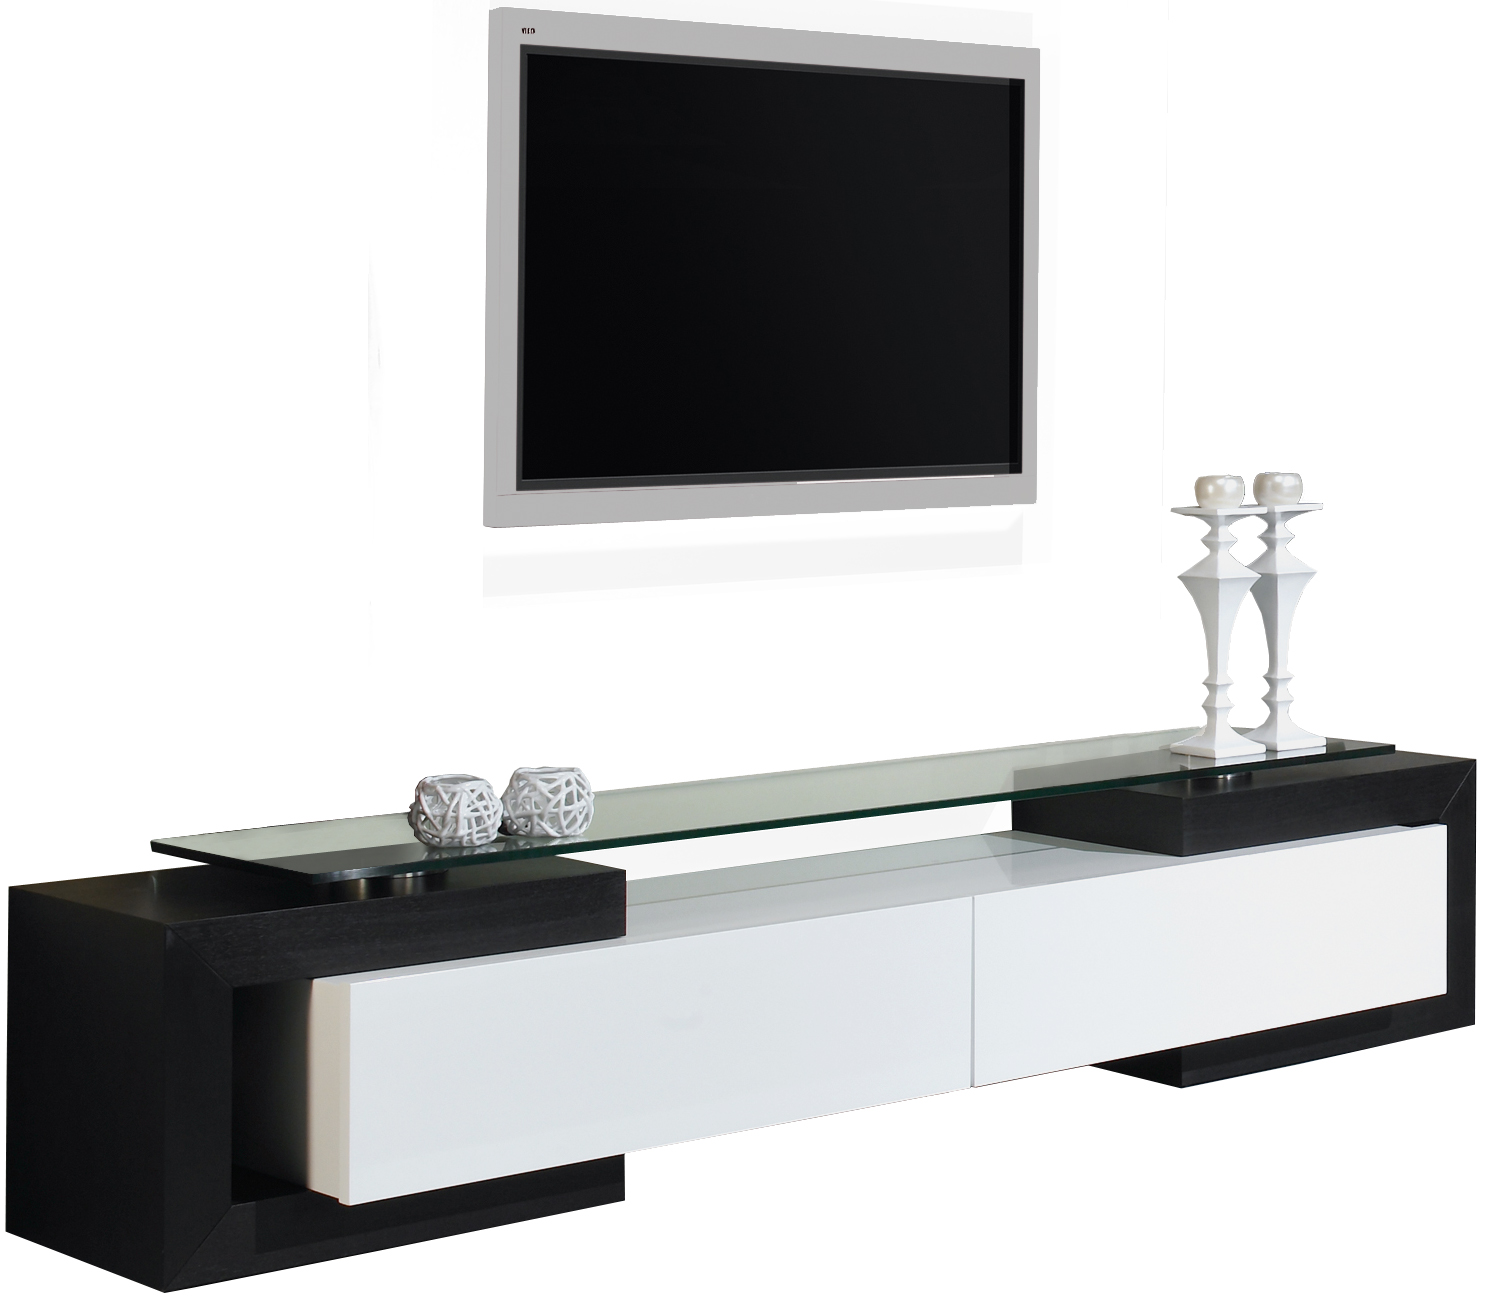 banc tv blanc laque led solutions pour la d coration int rieure de votre maison. Black Bedroom Furniture Sets. Home Design Ideas